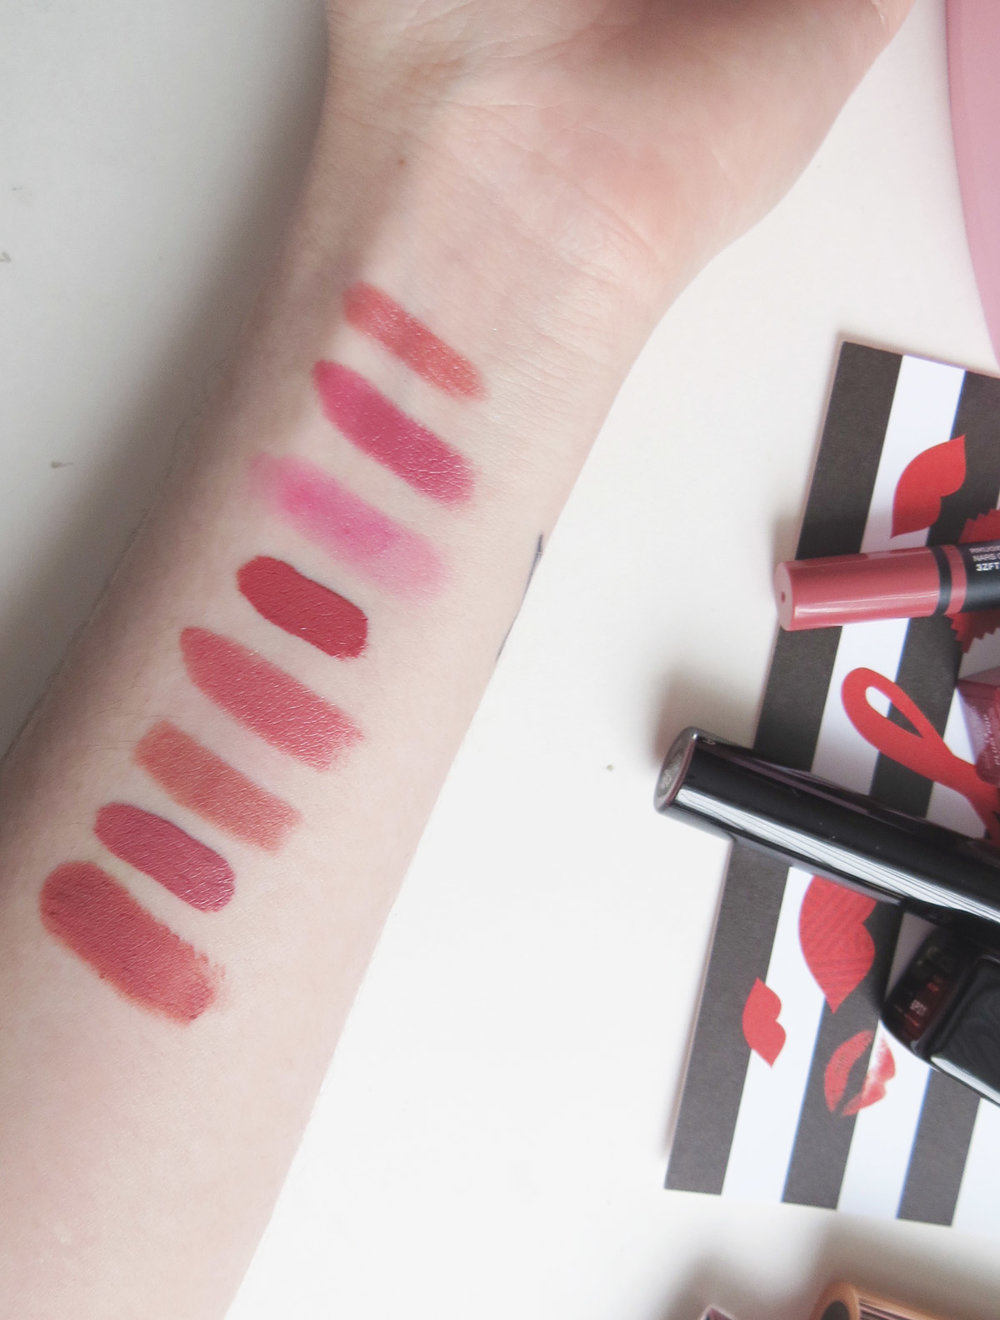 Rikugien, Plum Pop, Crush, Shush Blush, Rosy Boop, Pillow Talk, Petale de Rose, Mascarpone